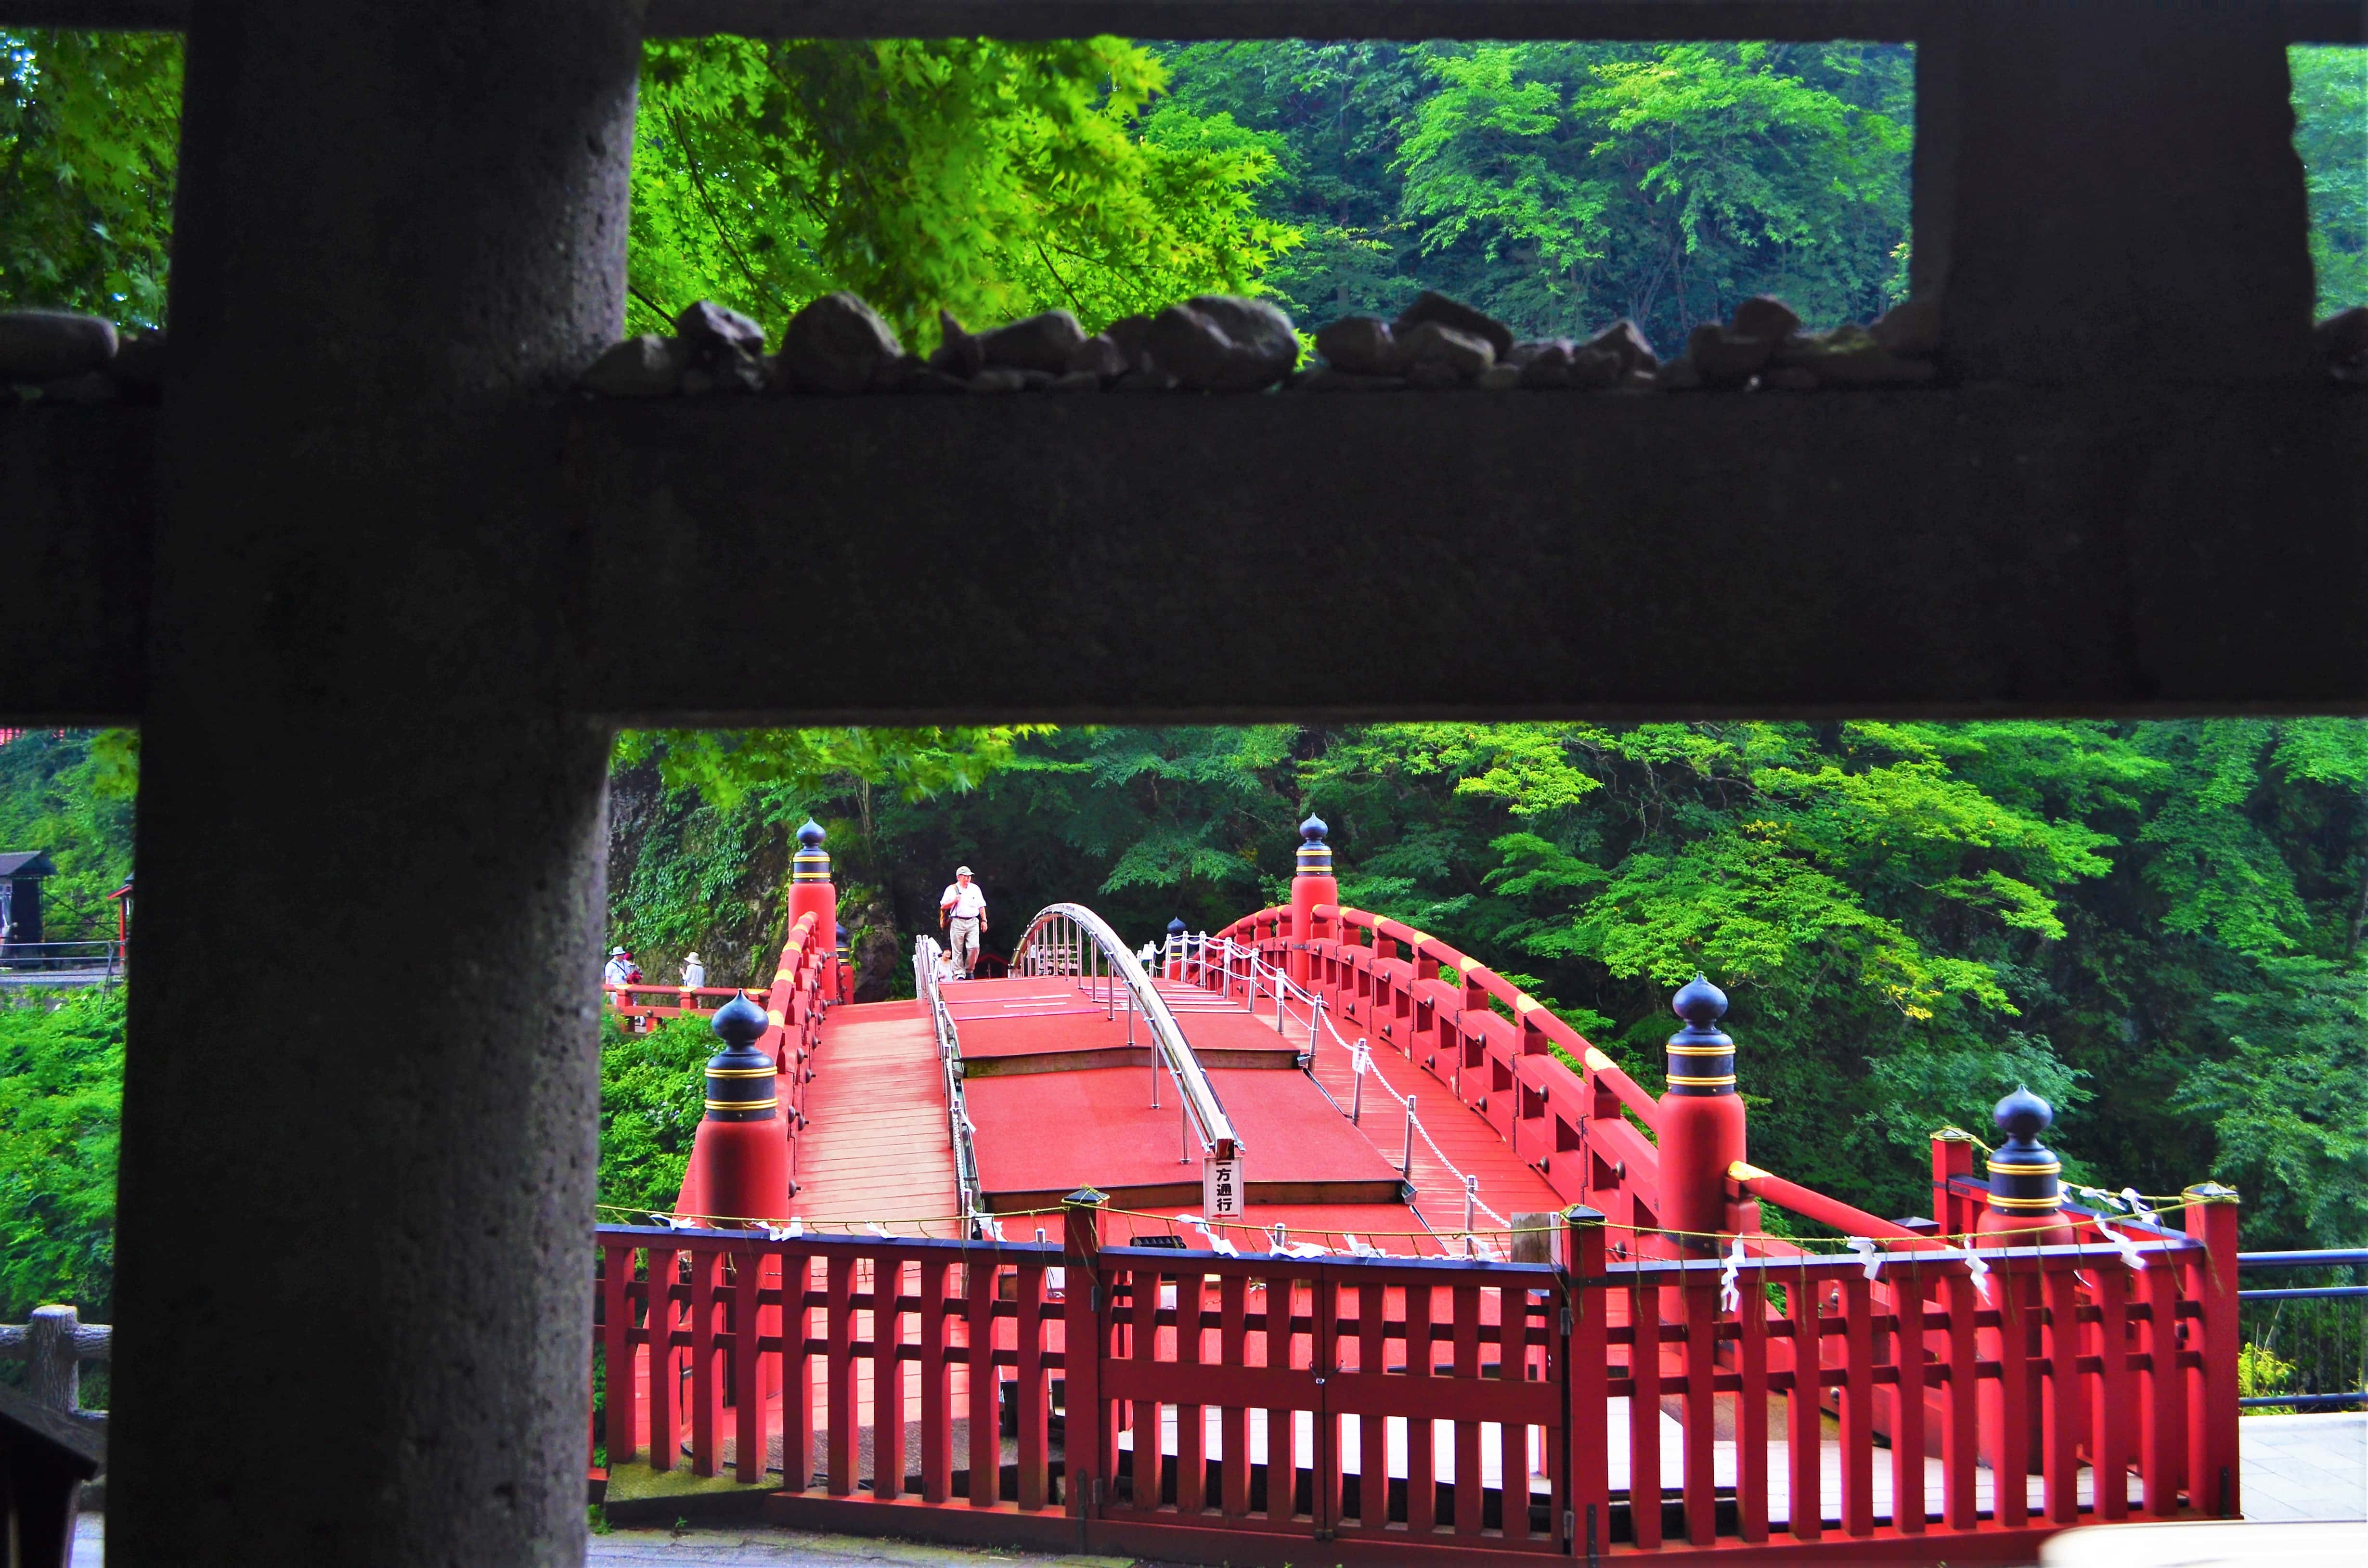 Photos from my explorations during lunch time in Nikko